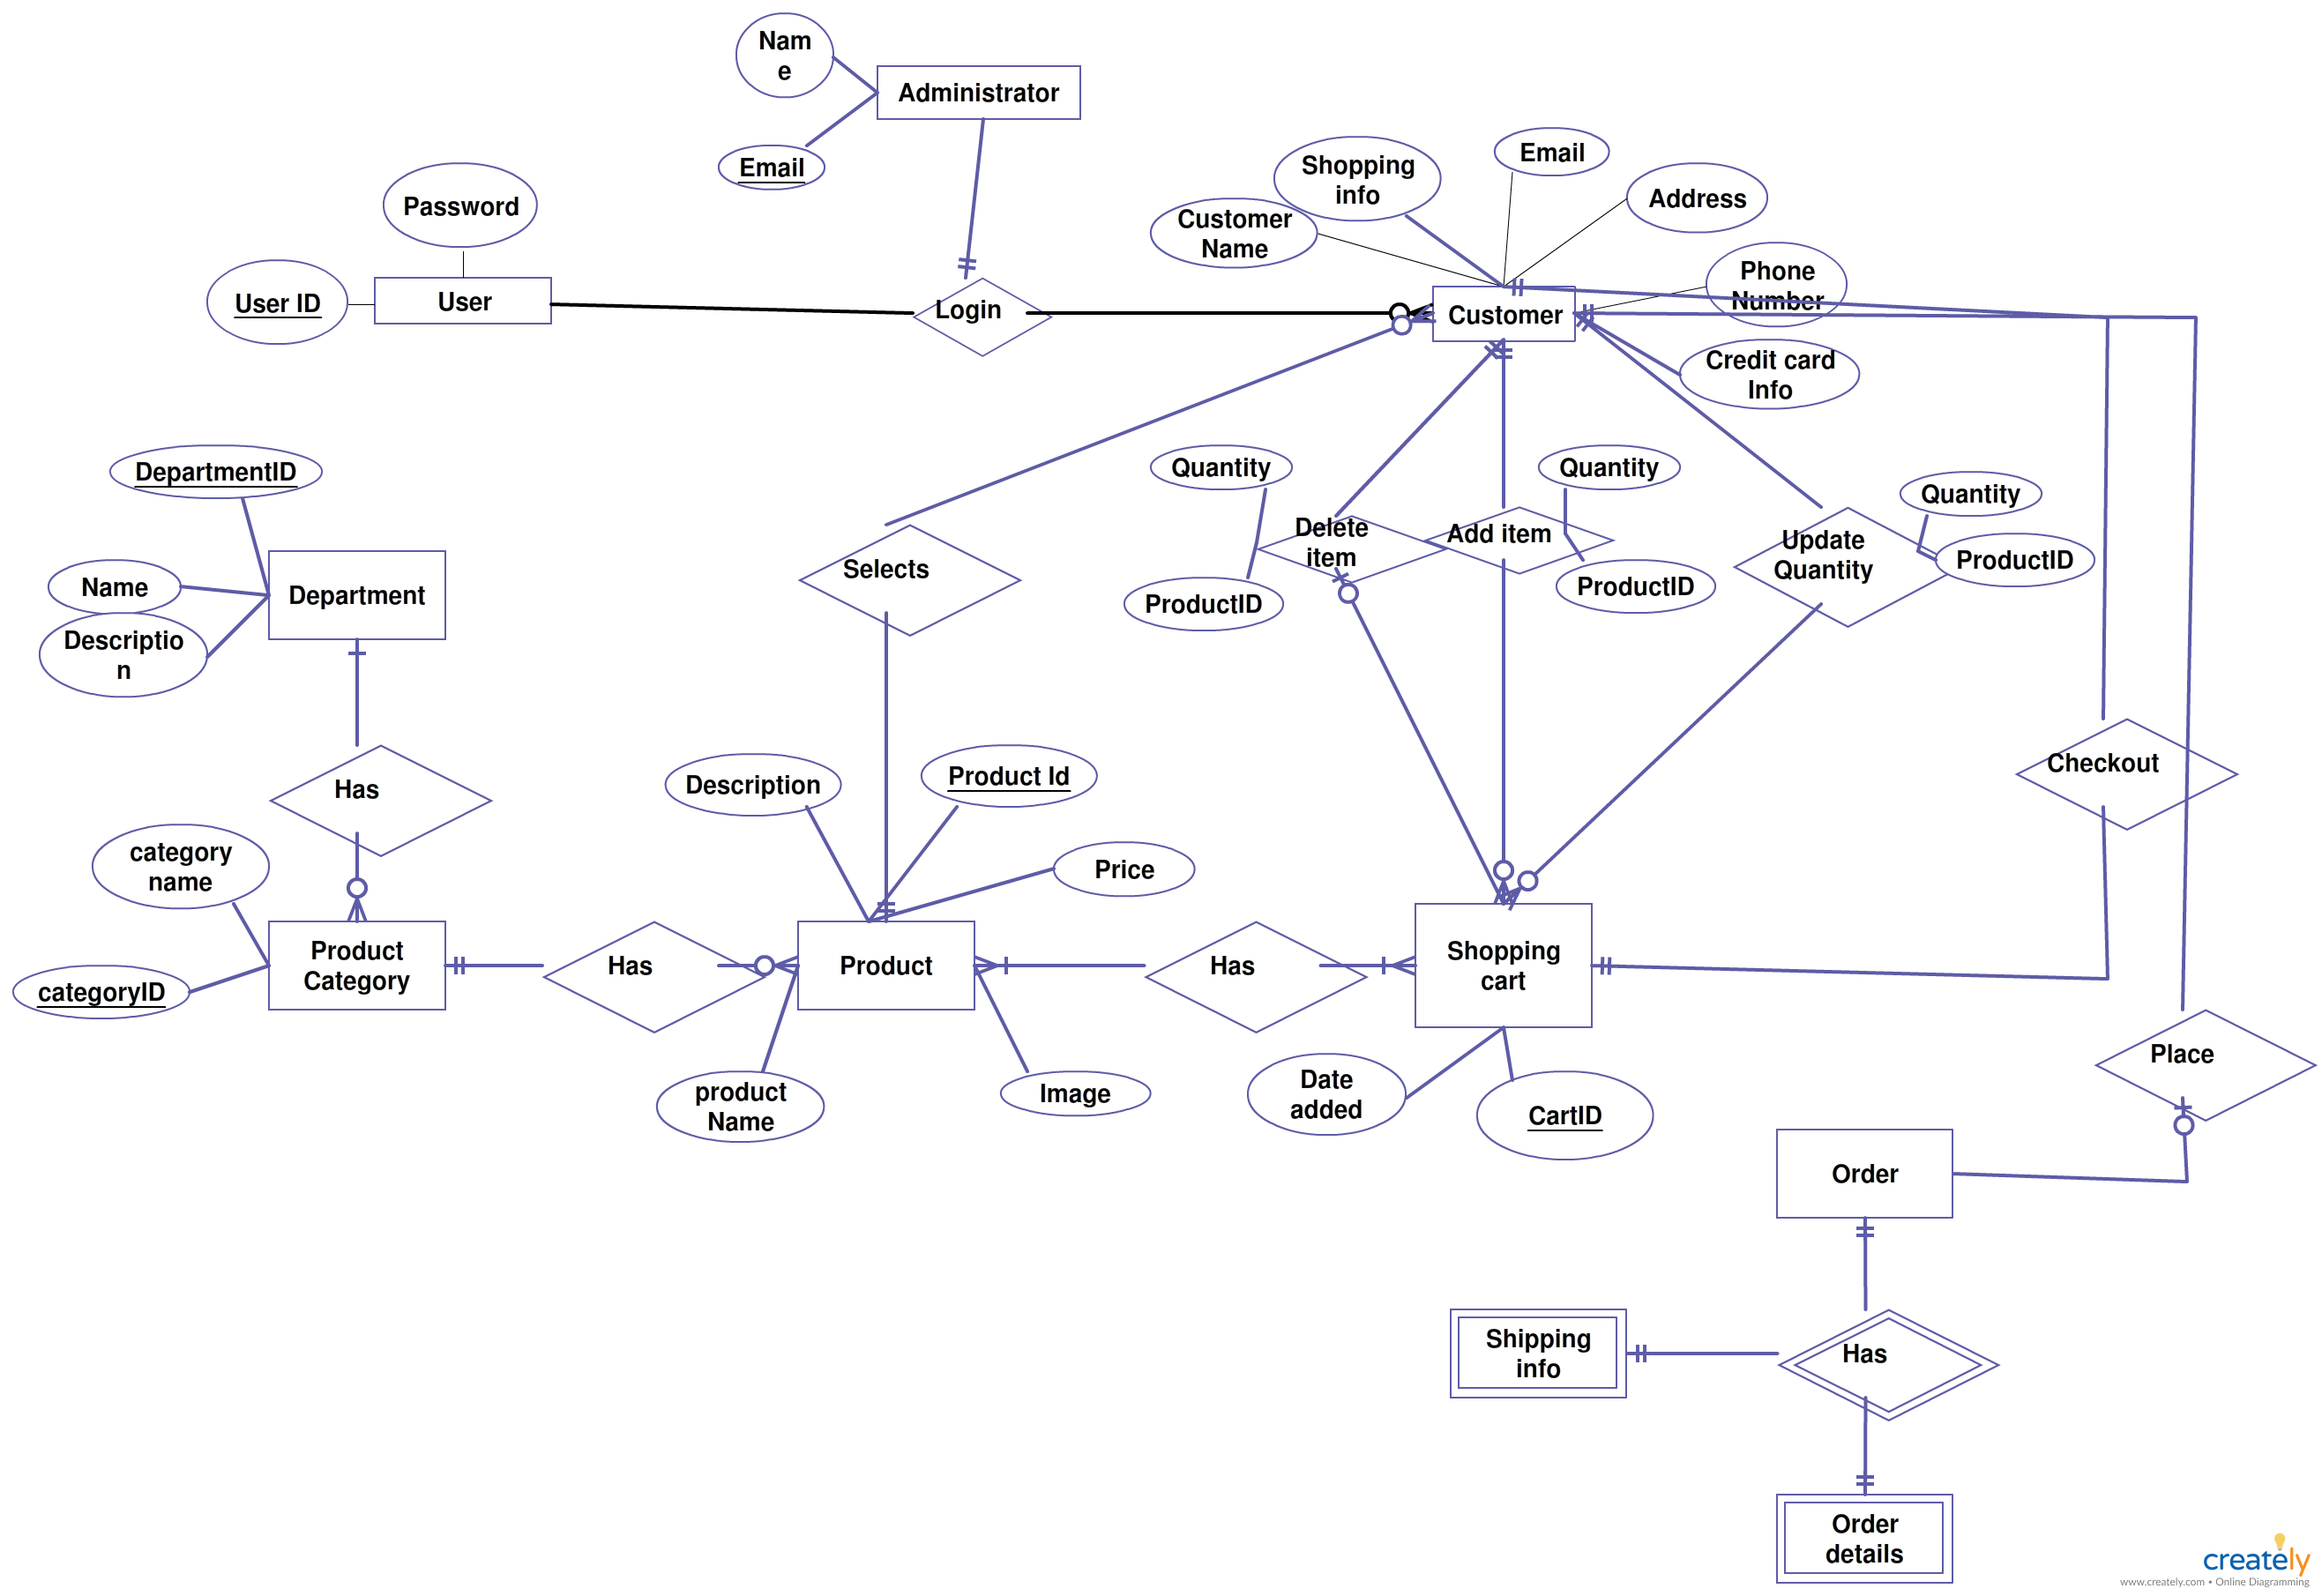 Er Diagrams Help Us To Visualize How Data Is Connected In A General inside Er Diagram Scenario Examples